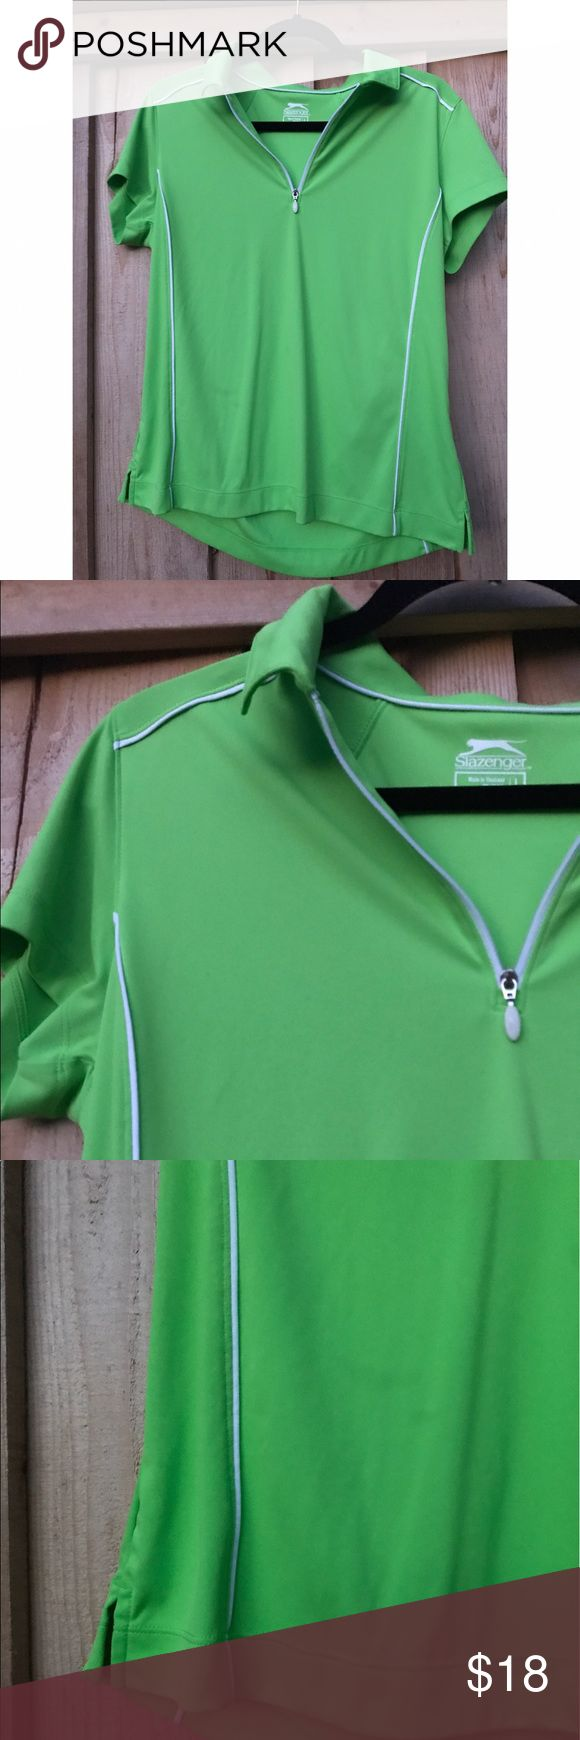 Slazenger like green women's golf polo This green zip up polo is great for any day on the golf course. With the dri-fit material you will be sure to stay cool in any condition. slazenger Other